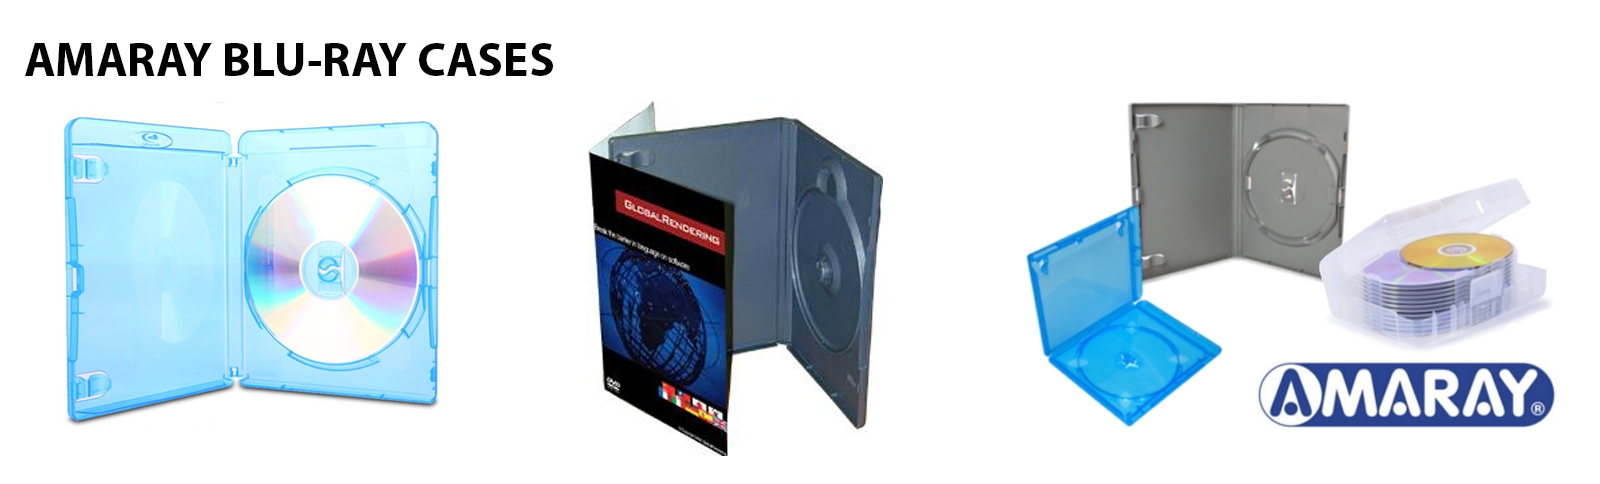 Blu-ray duplication in amaray cases in Oxfordshire UK